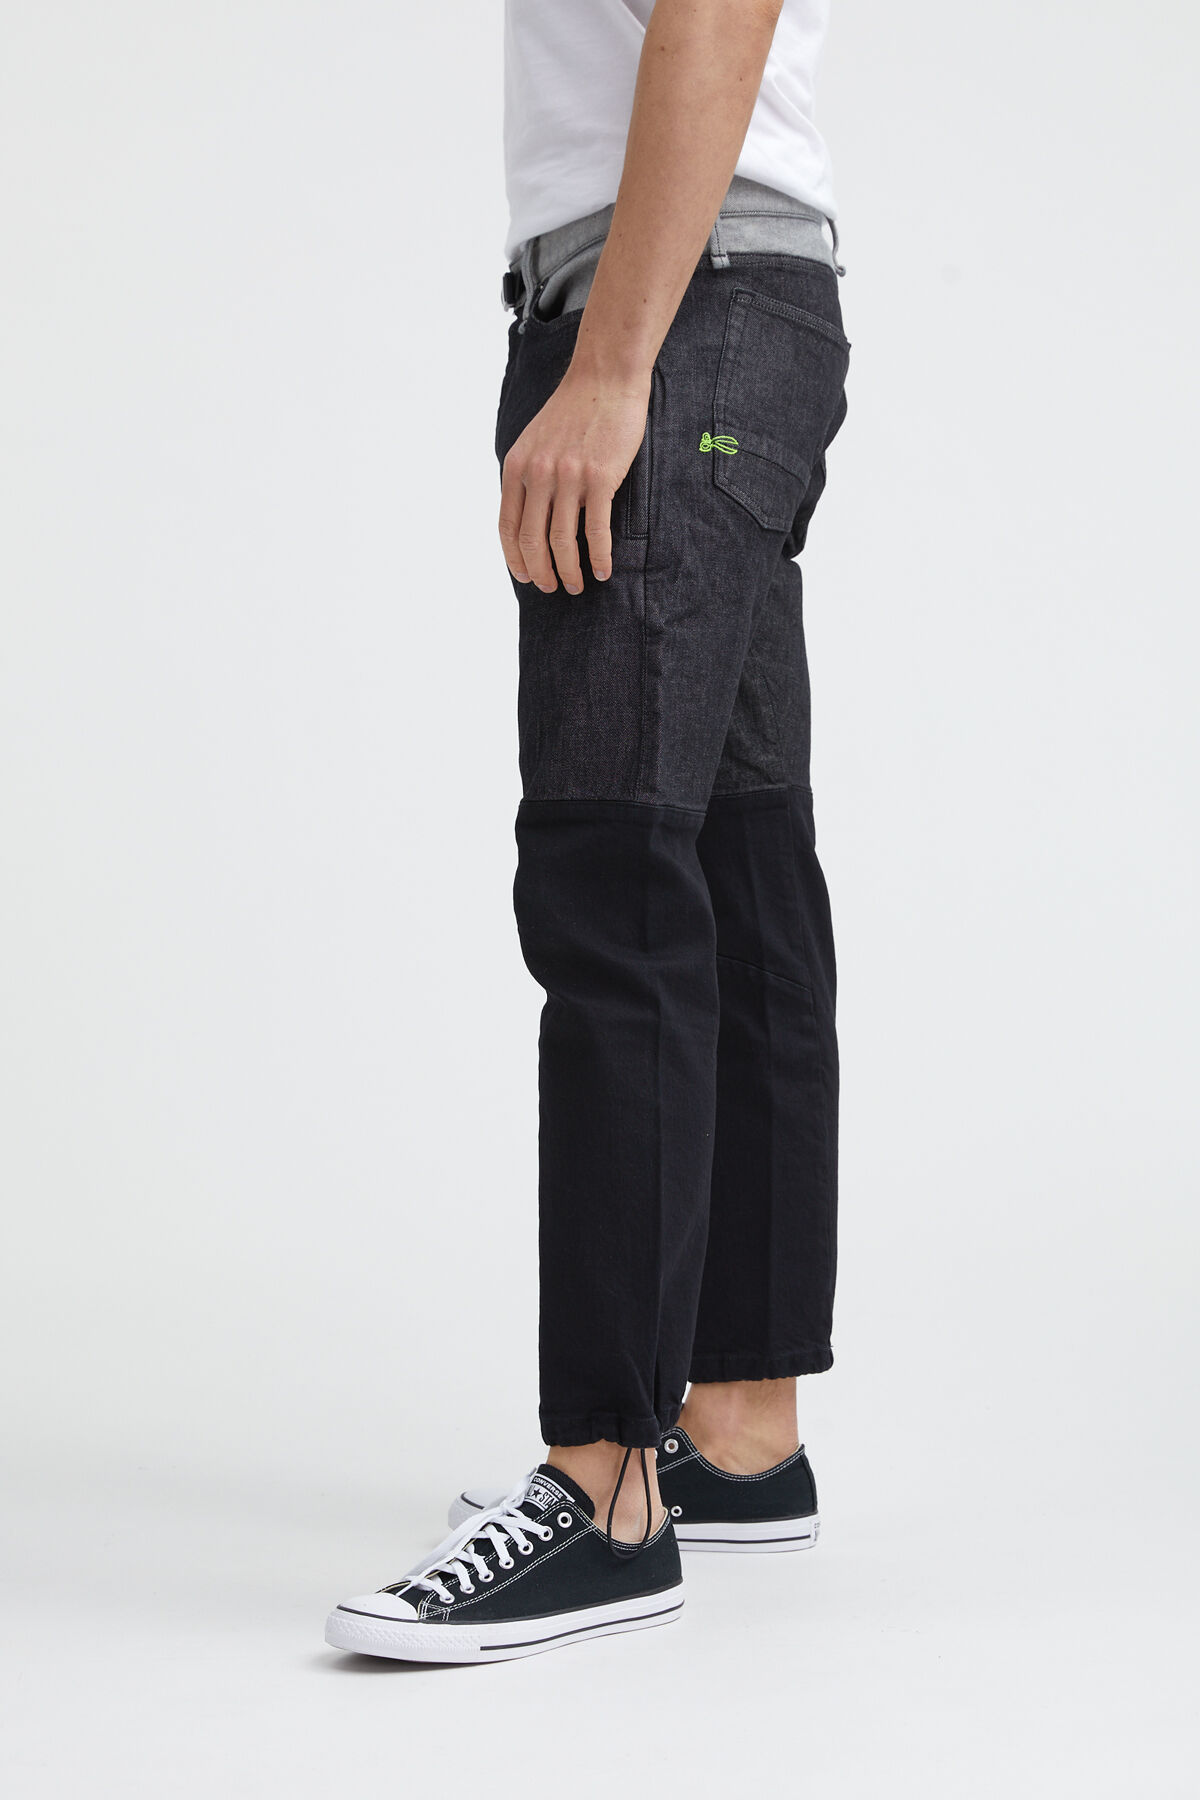 CROP ZIP 95MIX Black sustainable denim - Low Crotch, Cropped Fit